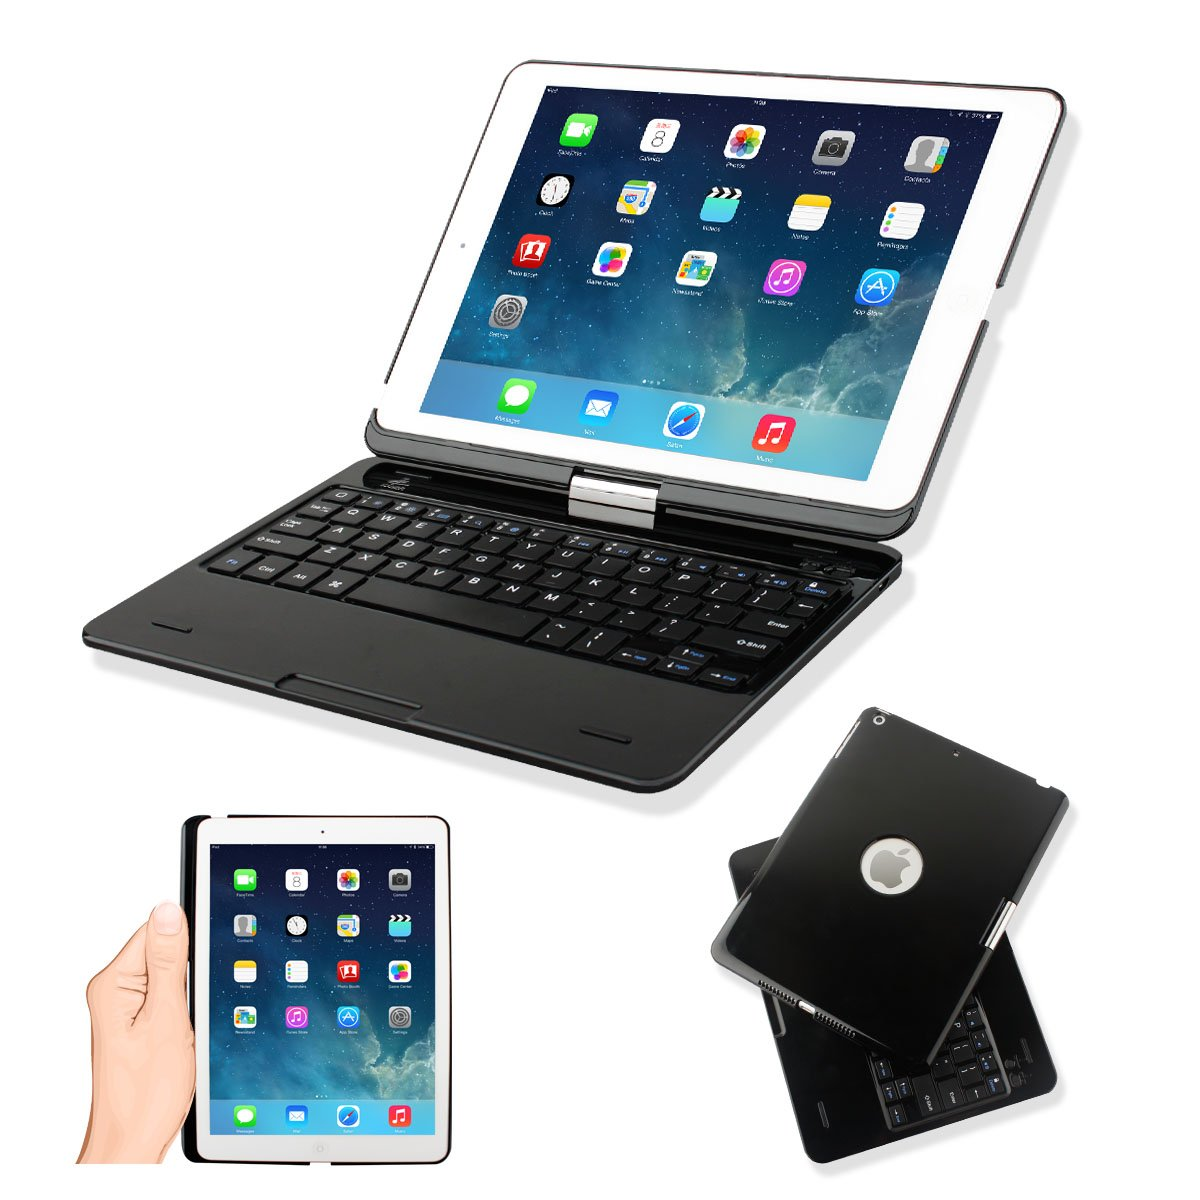 Kamor® iPad Air iPad 5 Case Cover with Keyboard, Apple iPad Air Retina 32gb 16gb Keyboard Case High Quality Protective Cover with Ultra Slim Bluetooth Keyboard for iPad 5 (5Gen 5th Generation) with 360 Degree Rotating Feature and Multiple Viewing Angles, Folio Style with IOS Commands for Kids, Girls, Boys, Girlfriend, Boyfriend, Women, Men, Toddlers   BlackCustomer reviews and more information